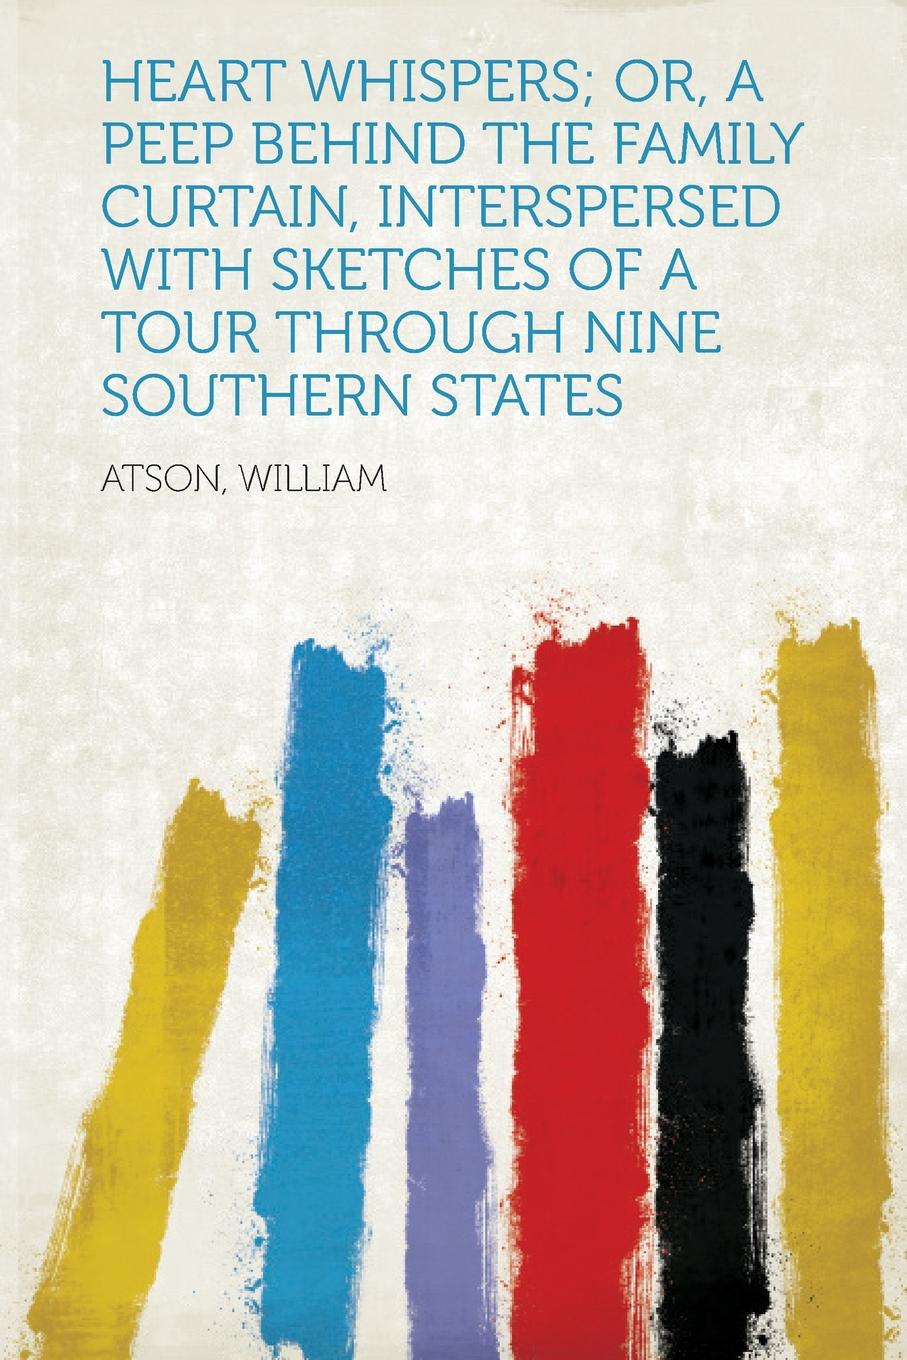 Atson William Heart Whispers; Or, a Peep Behind the Family Curtain, Interspersed with Sketches of a Tour Through Nine Southern States peep ehasalu hullu munga päevik